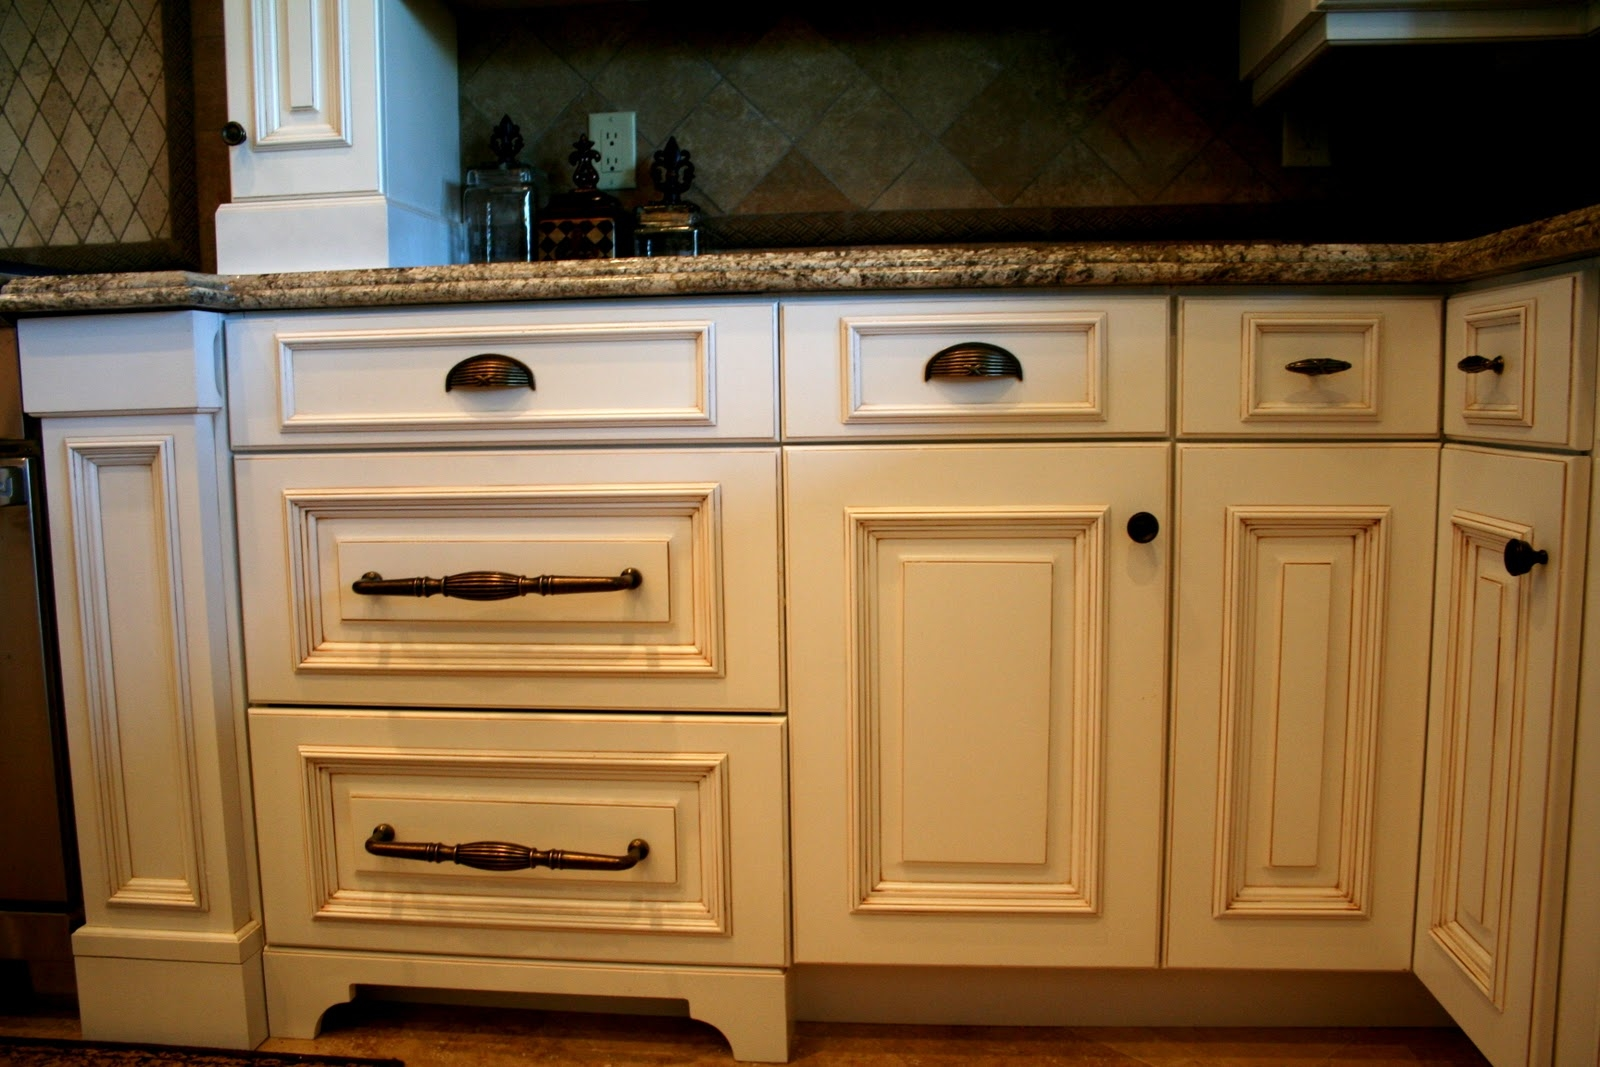 Kitchen Cabinets With Pulls And Knobs